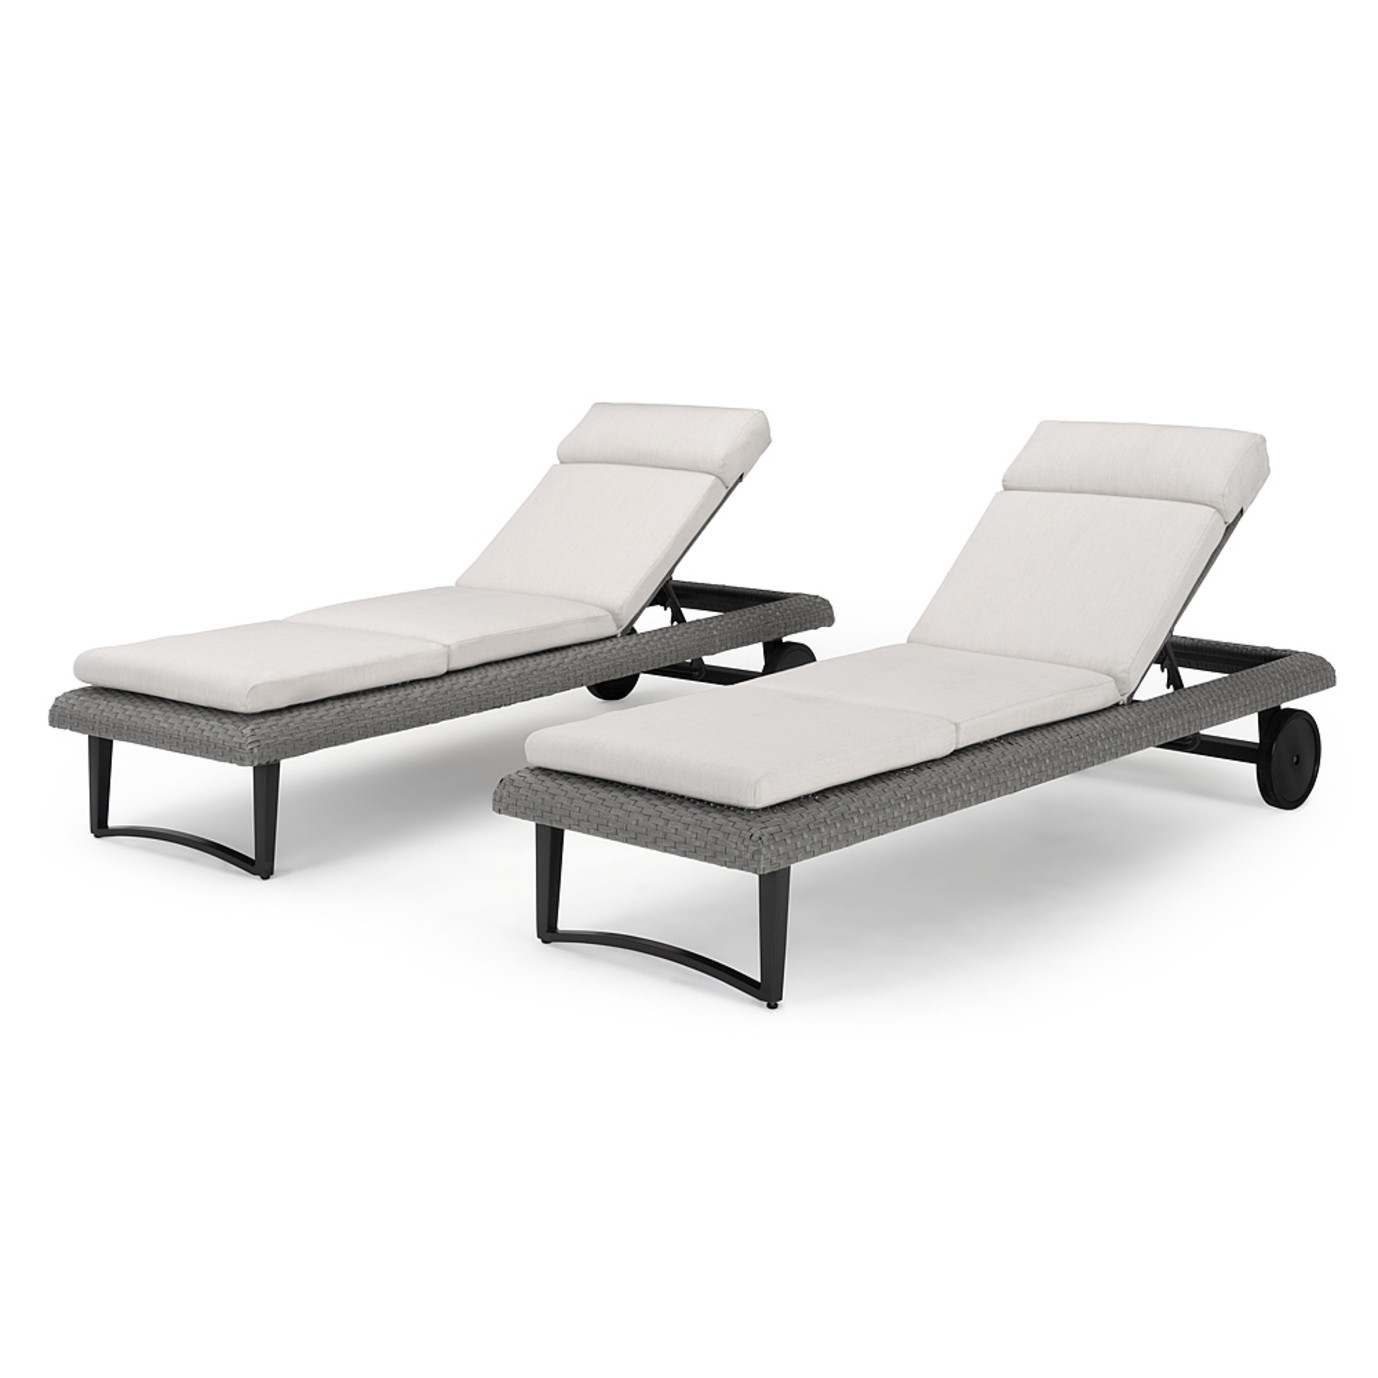 Vistano® Chaise Lounges